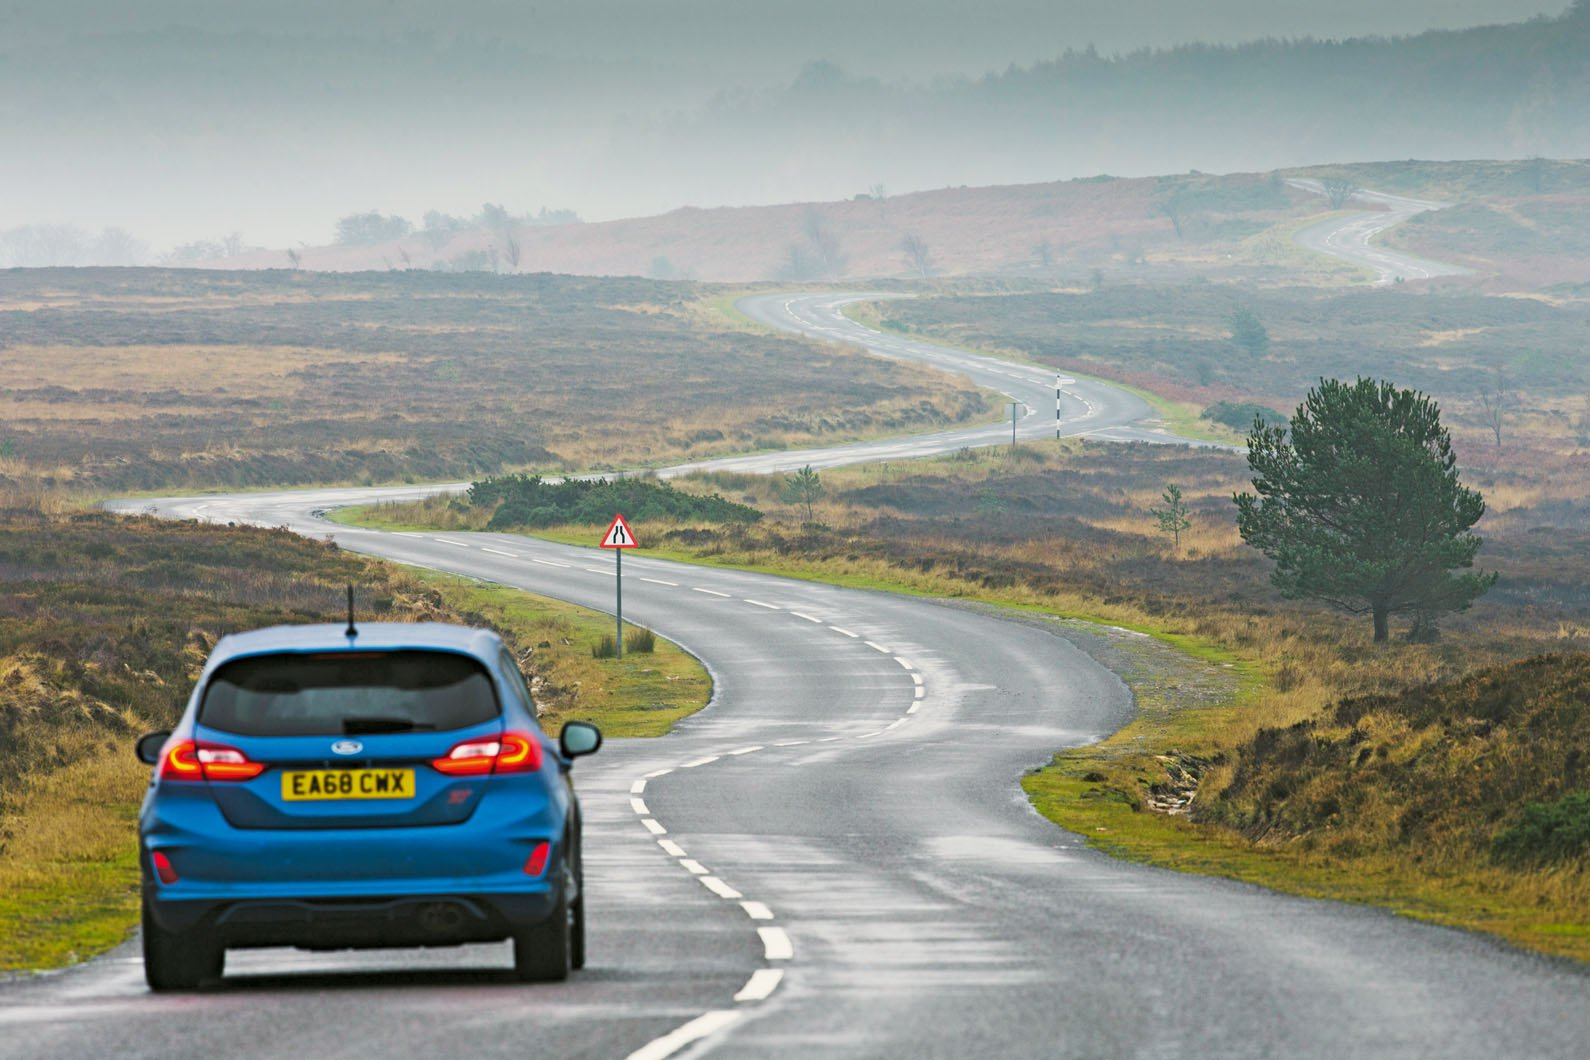 Ford Fiesta ST on winding road